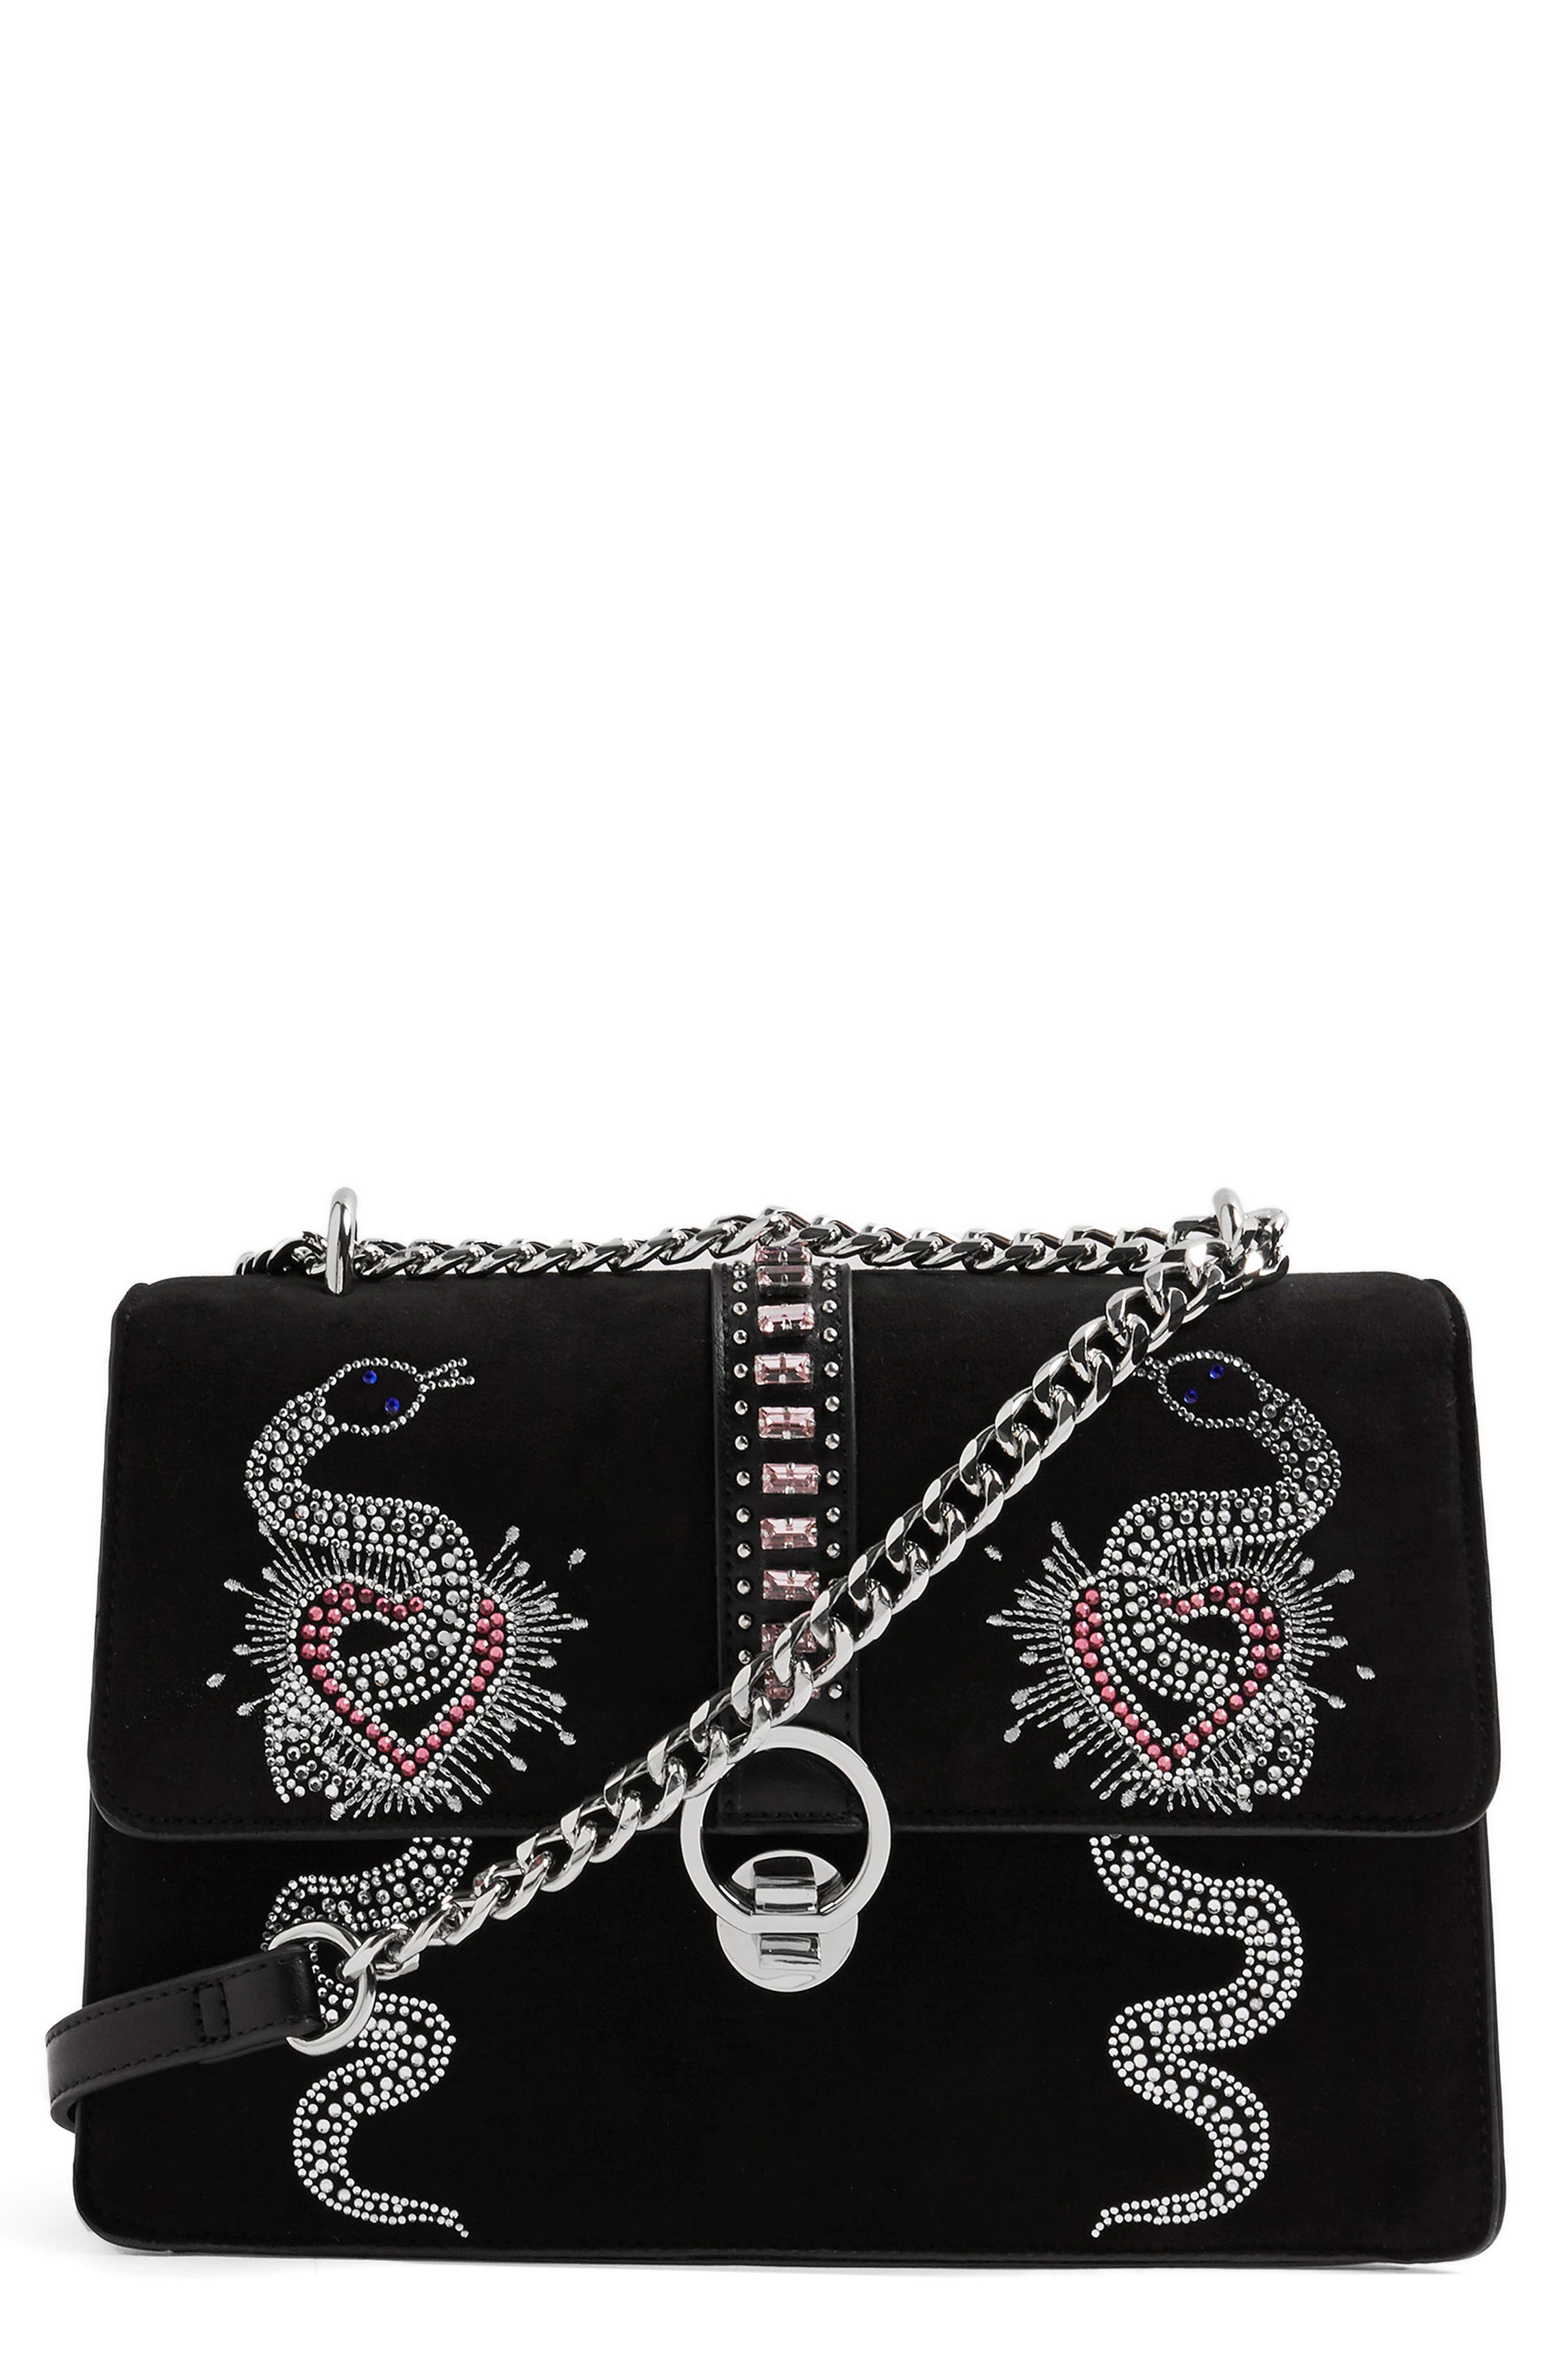 Topshop Sassy Snake Gem Shoulder Bag